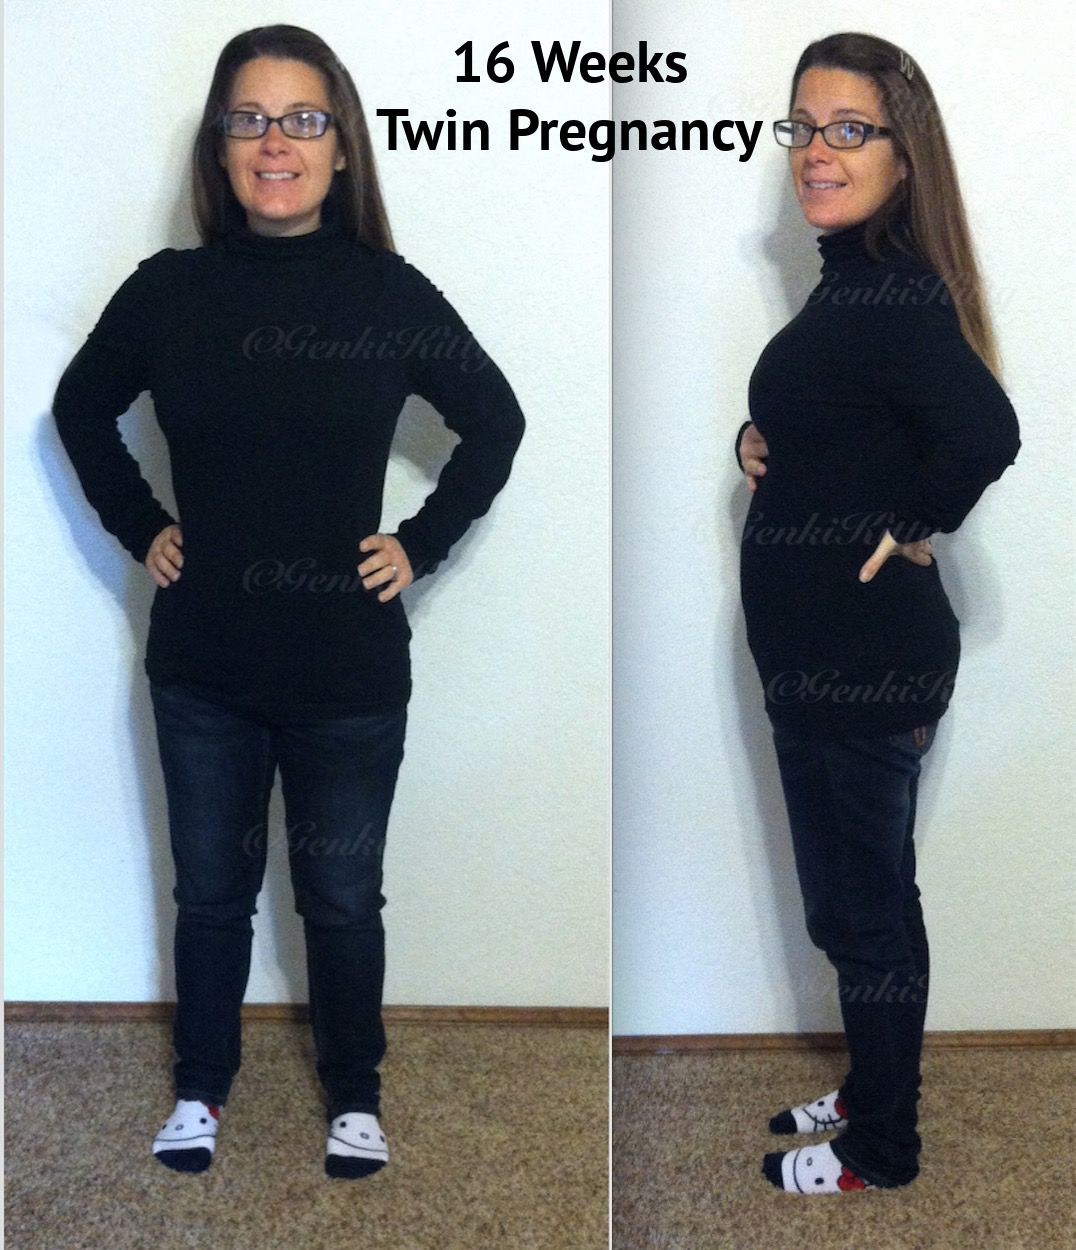 16th week twin pregnancy